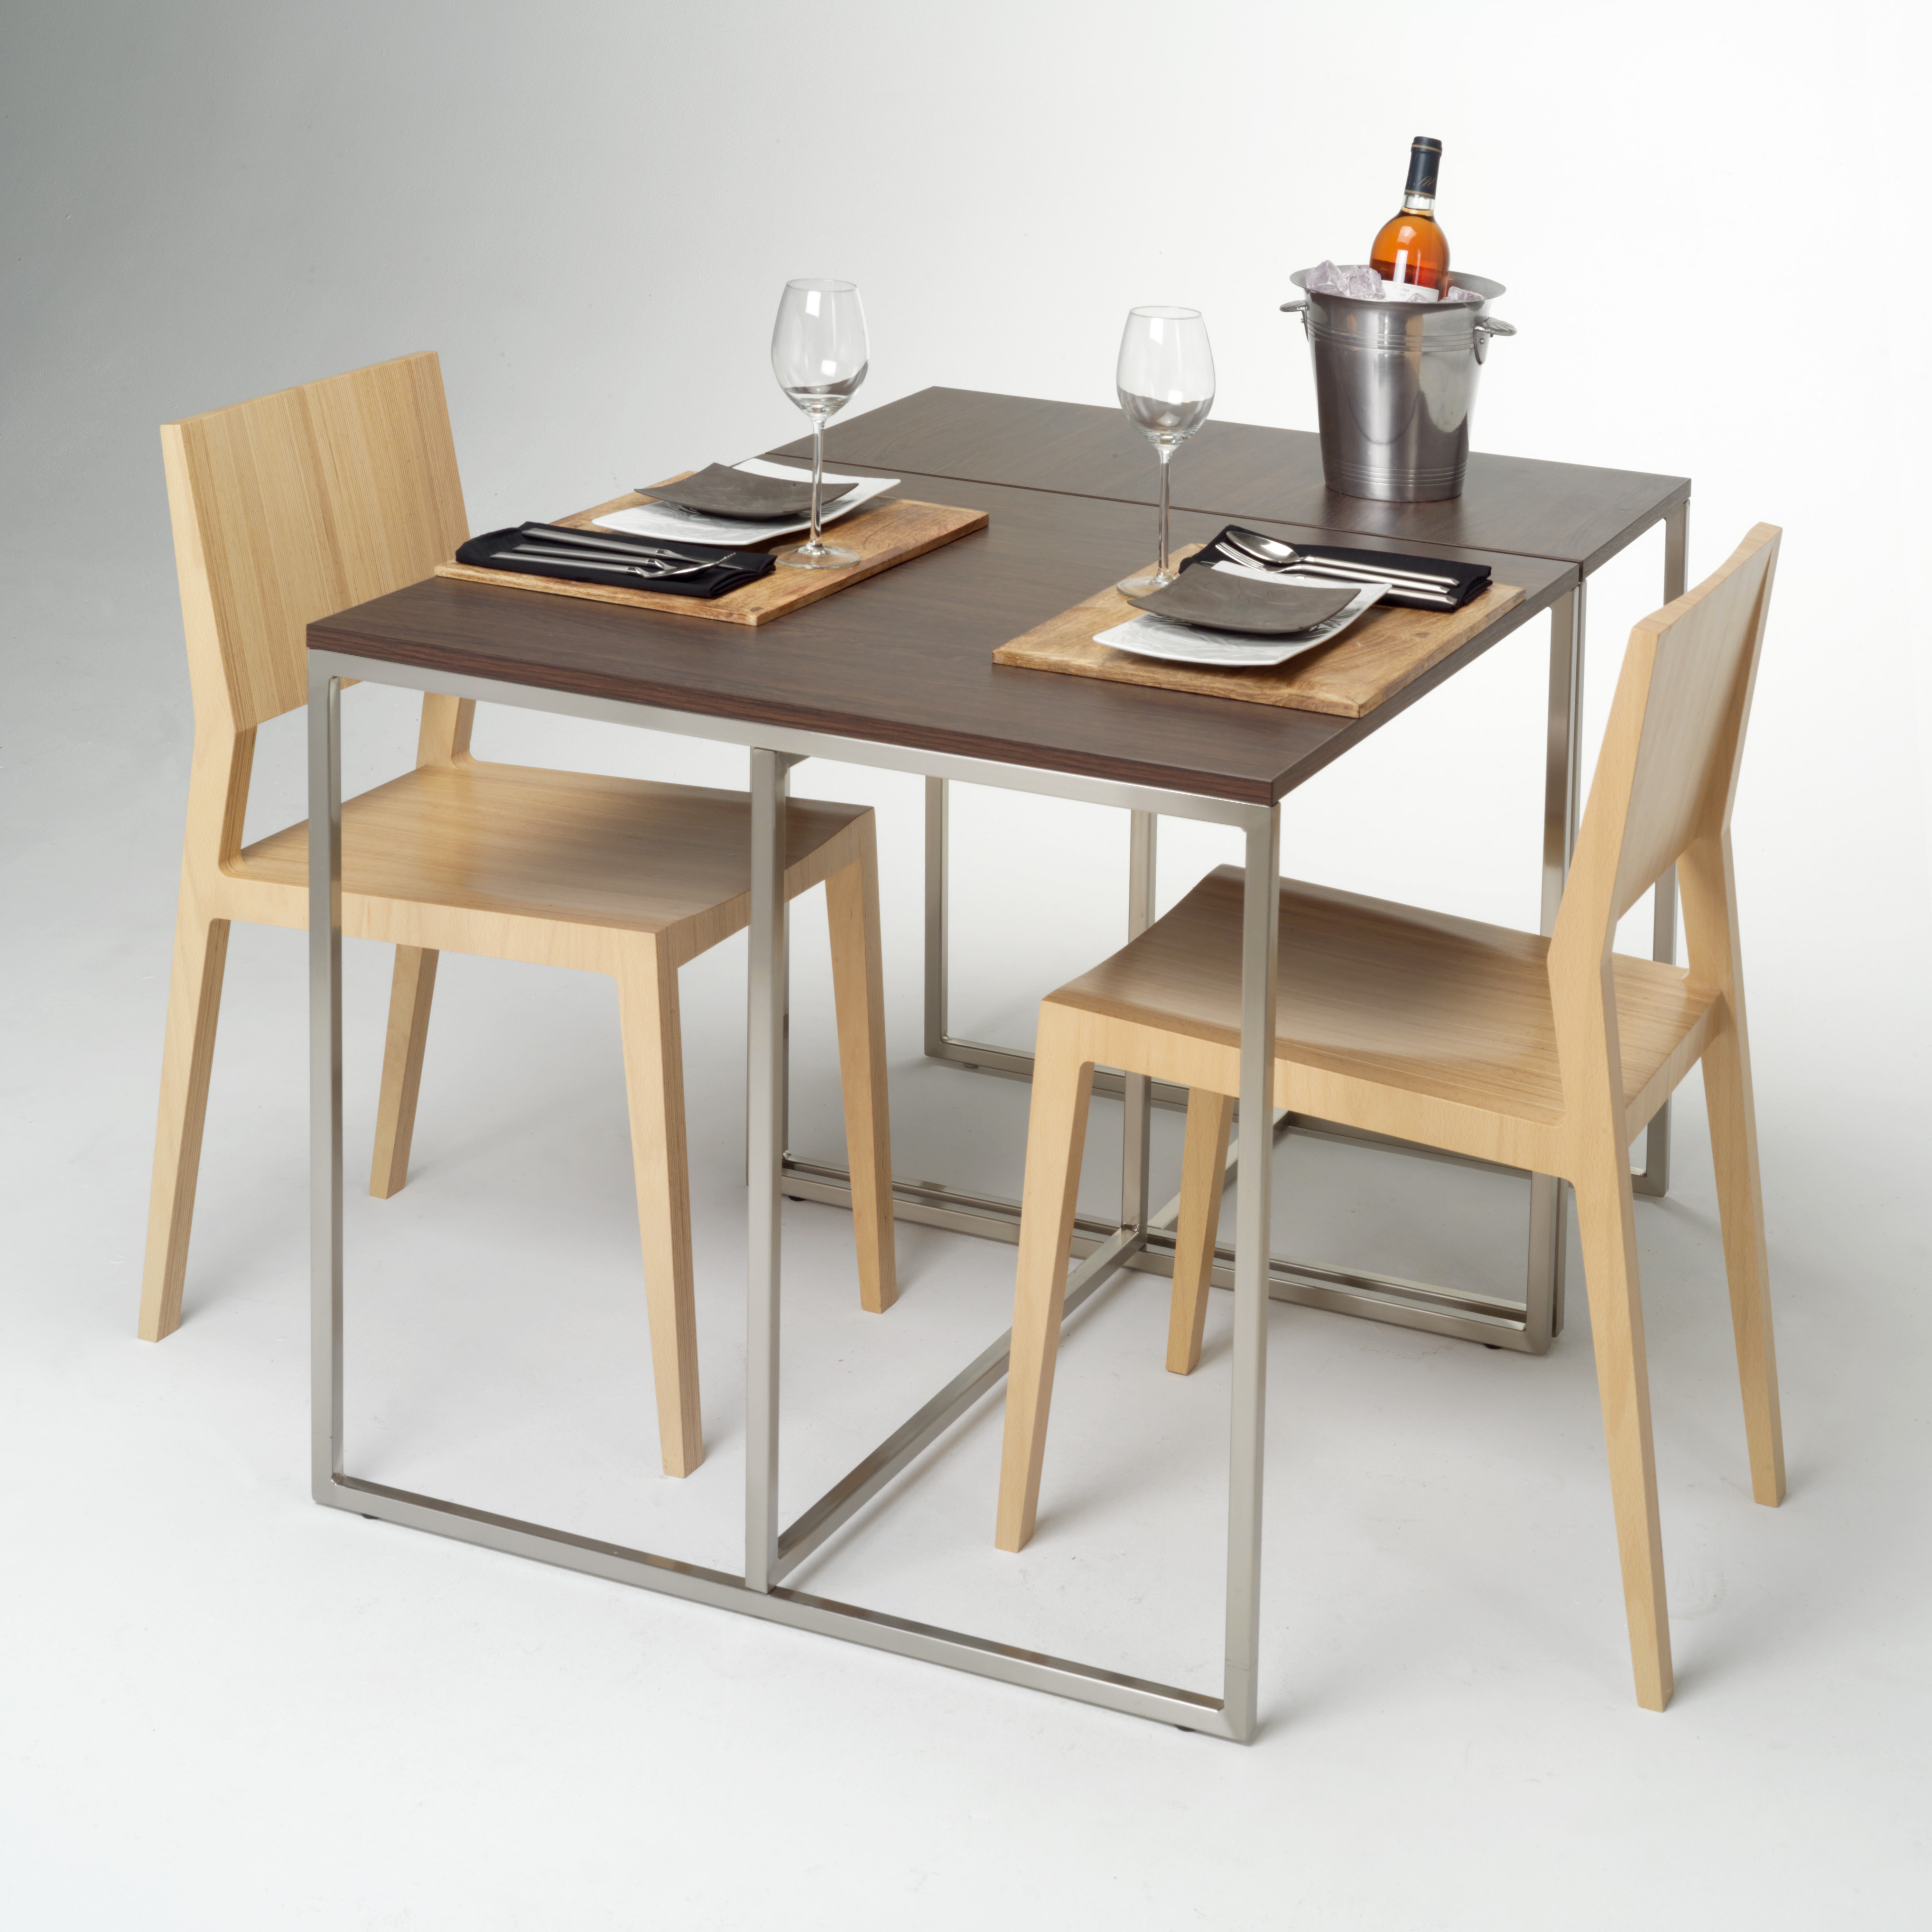 Outstanding Dining Table Set for Two 4072 x 4072 · 1549 kB · jpeg